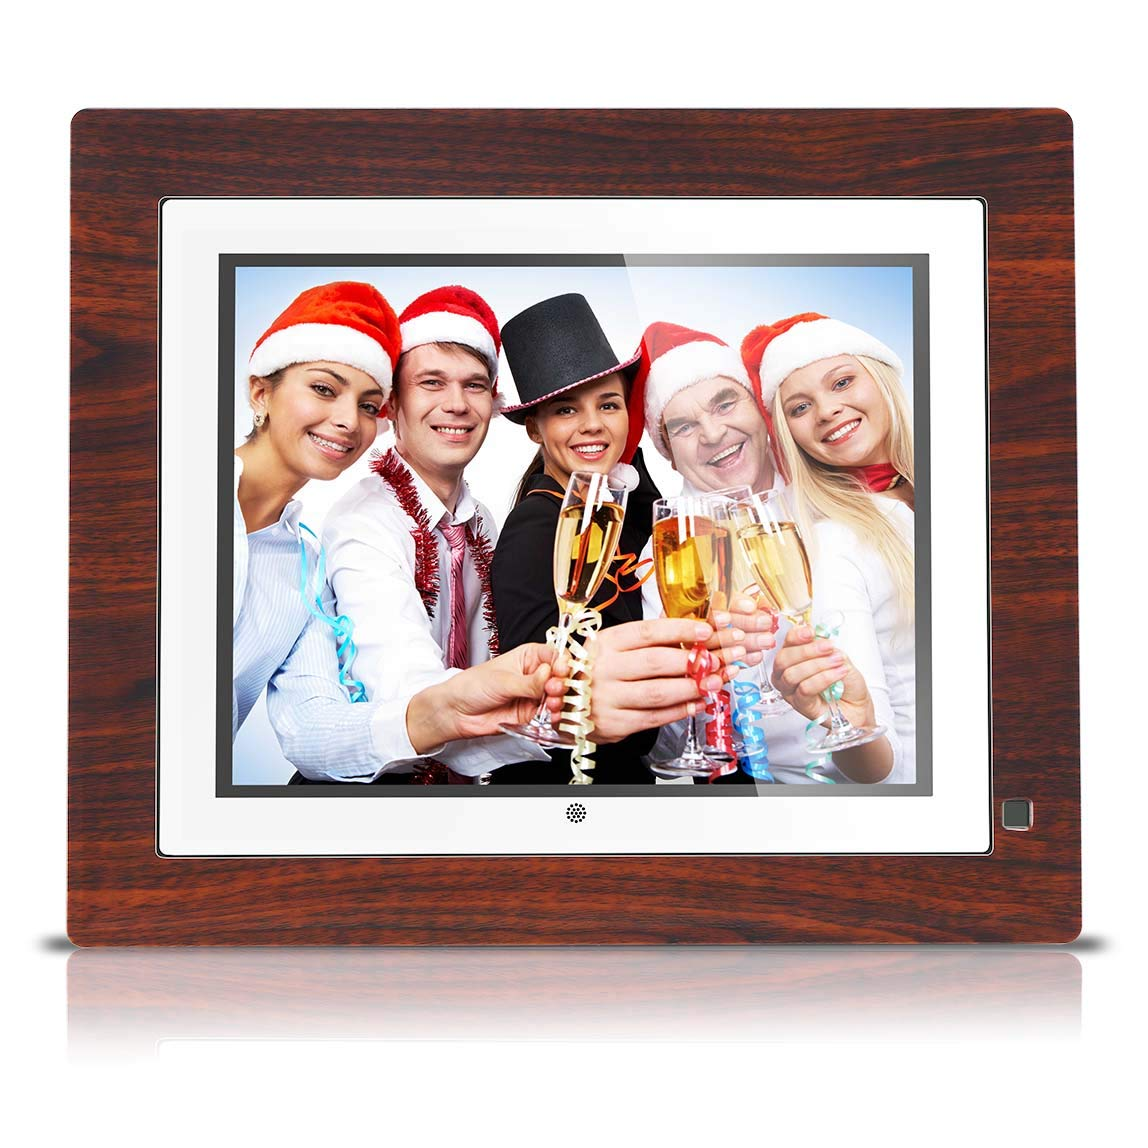 BSIMB Digital Picture Frame Digital Photo Frame 9 inch IPS Display 1067x800(4:3) Hi-Res Digital Photo & HD Video Frame and Motion Sensor USB/SD Card Playback Infrared Remote Control M09 by Bsimb (Image #1)